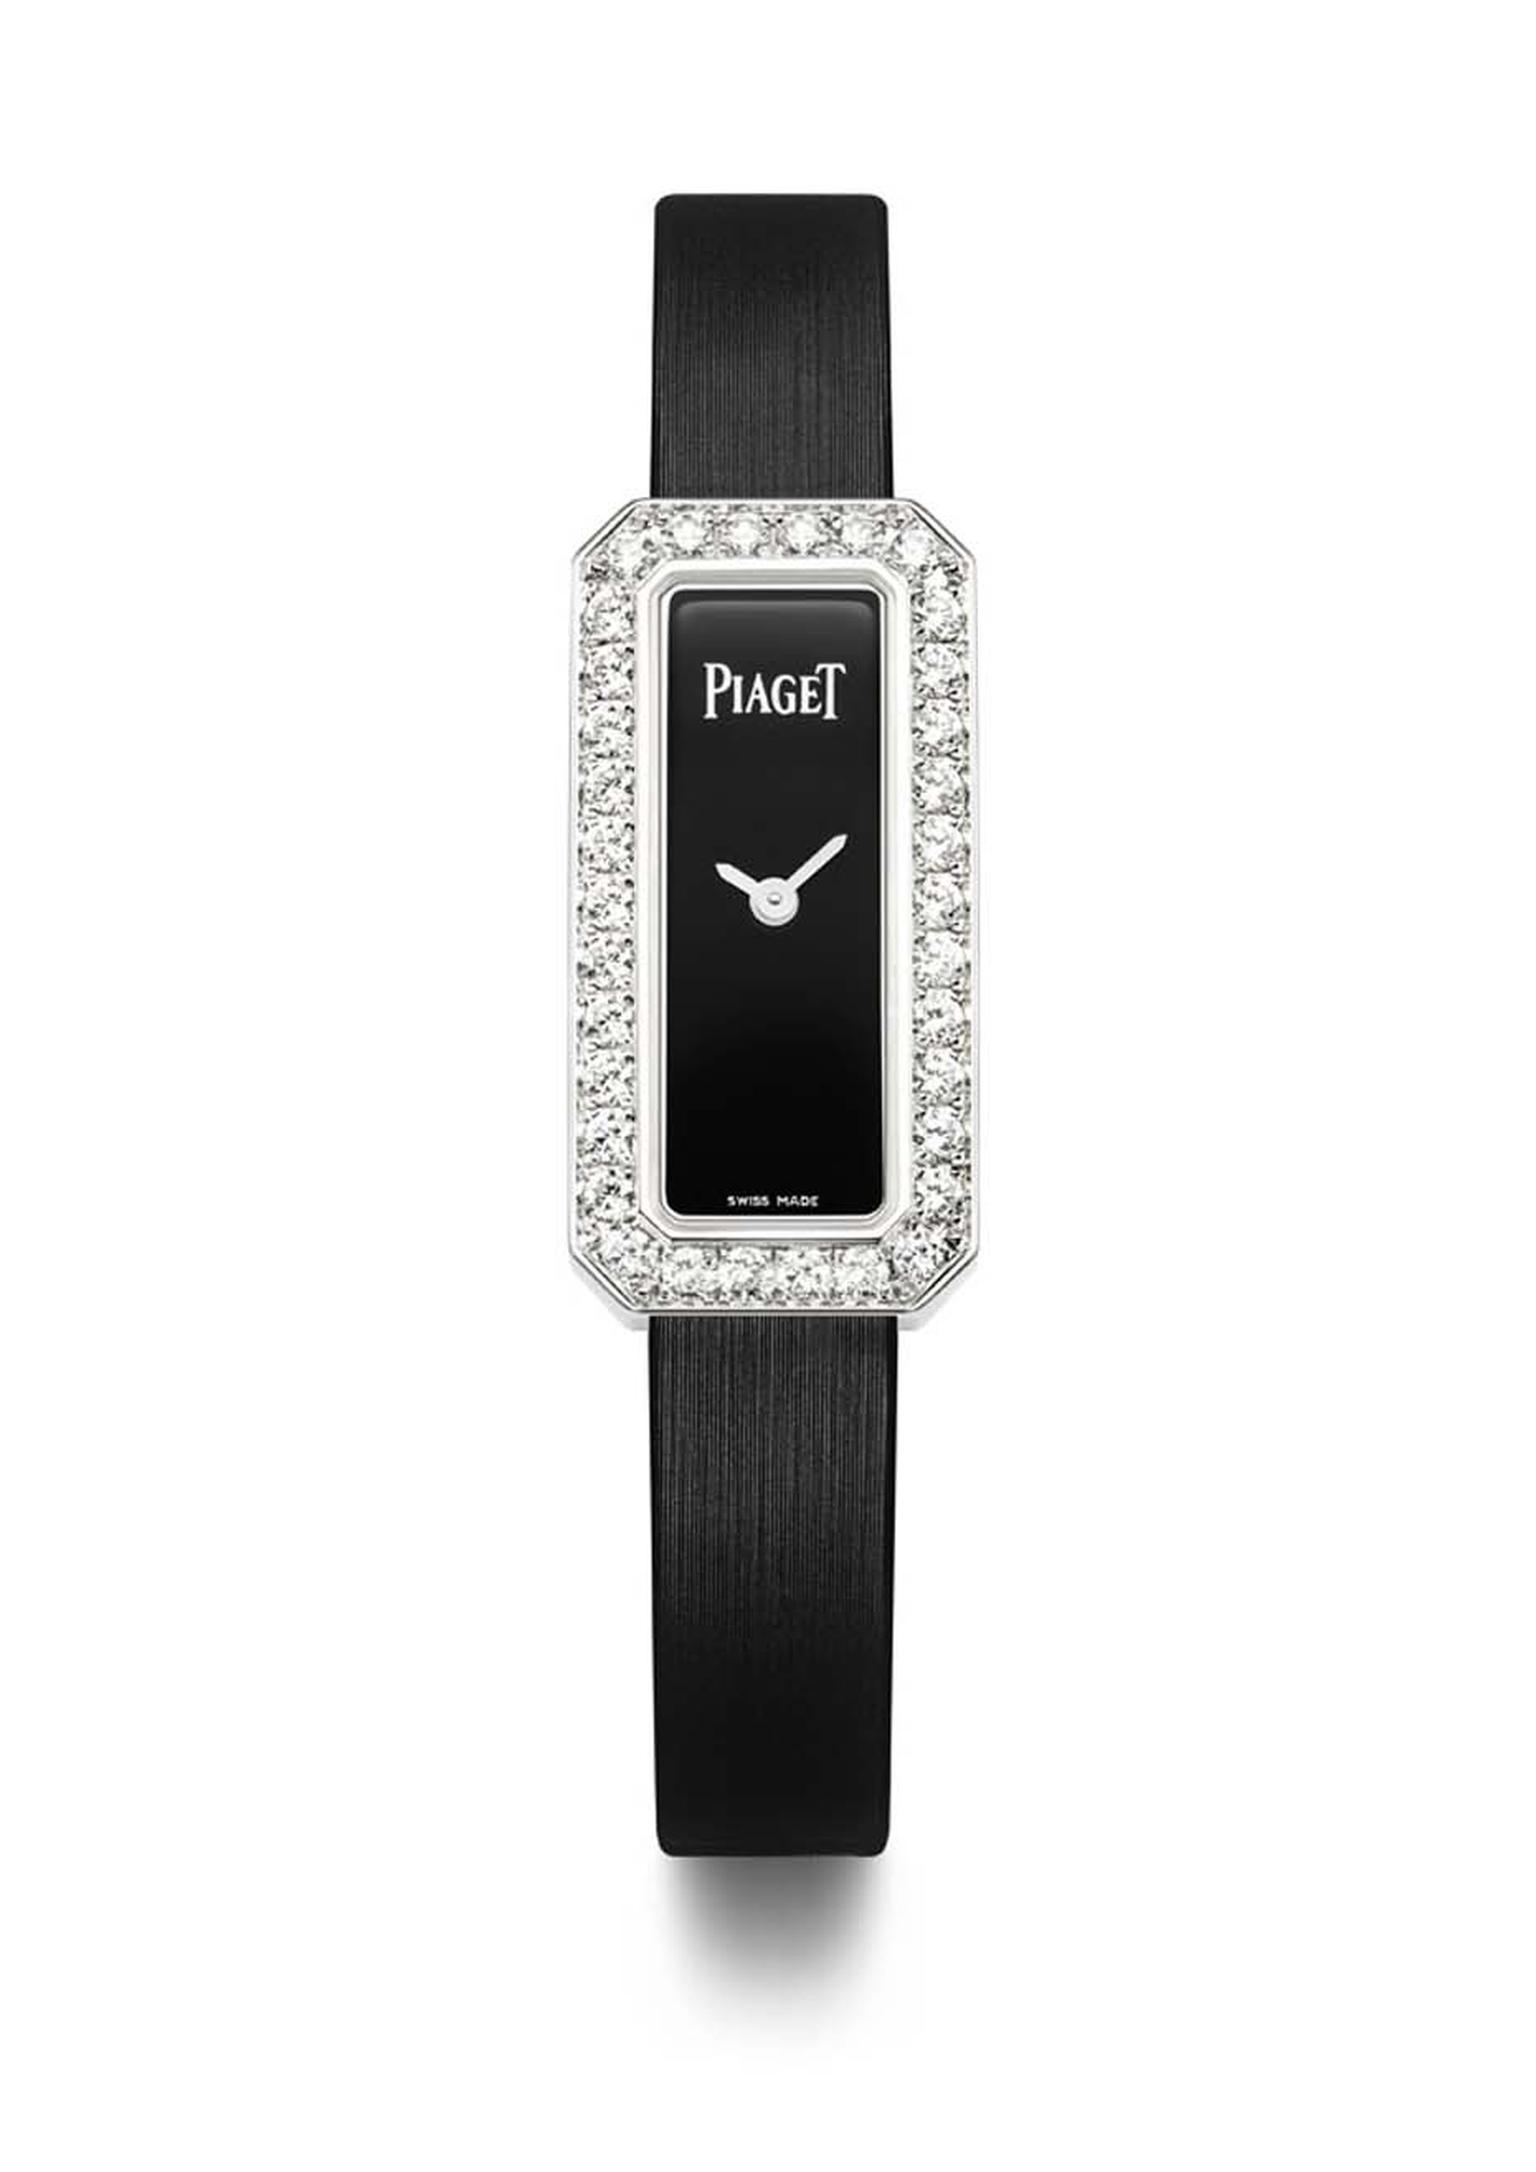 Piaget Limelight Diamonds watch in white gold with an emerald-cut shaped case and black lacquer dial, set with 1.10ct diamonds on the bezel and presented on a black satin strap with an ardillon buckle set with a single diamond.